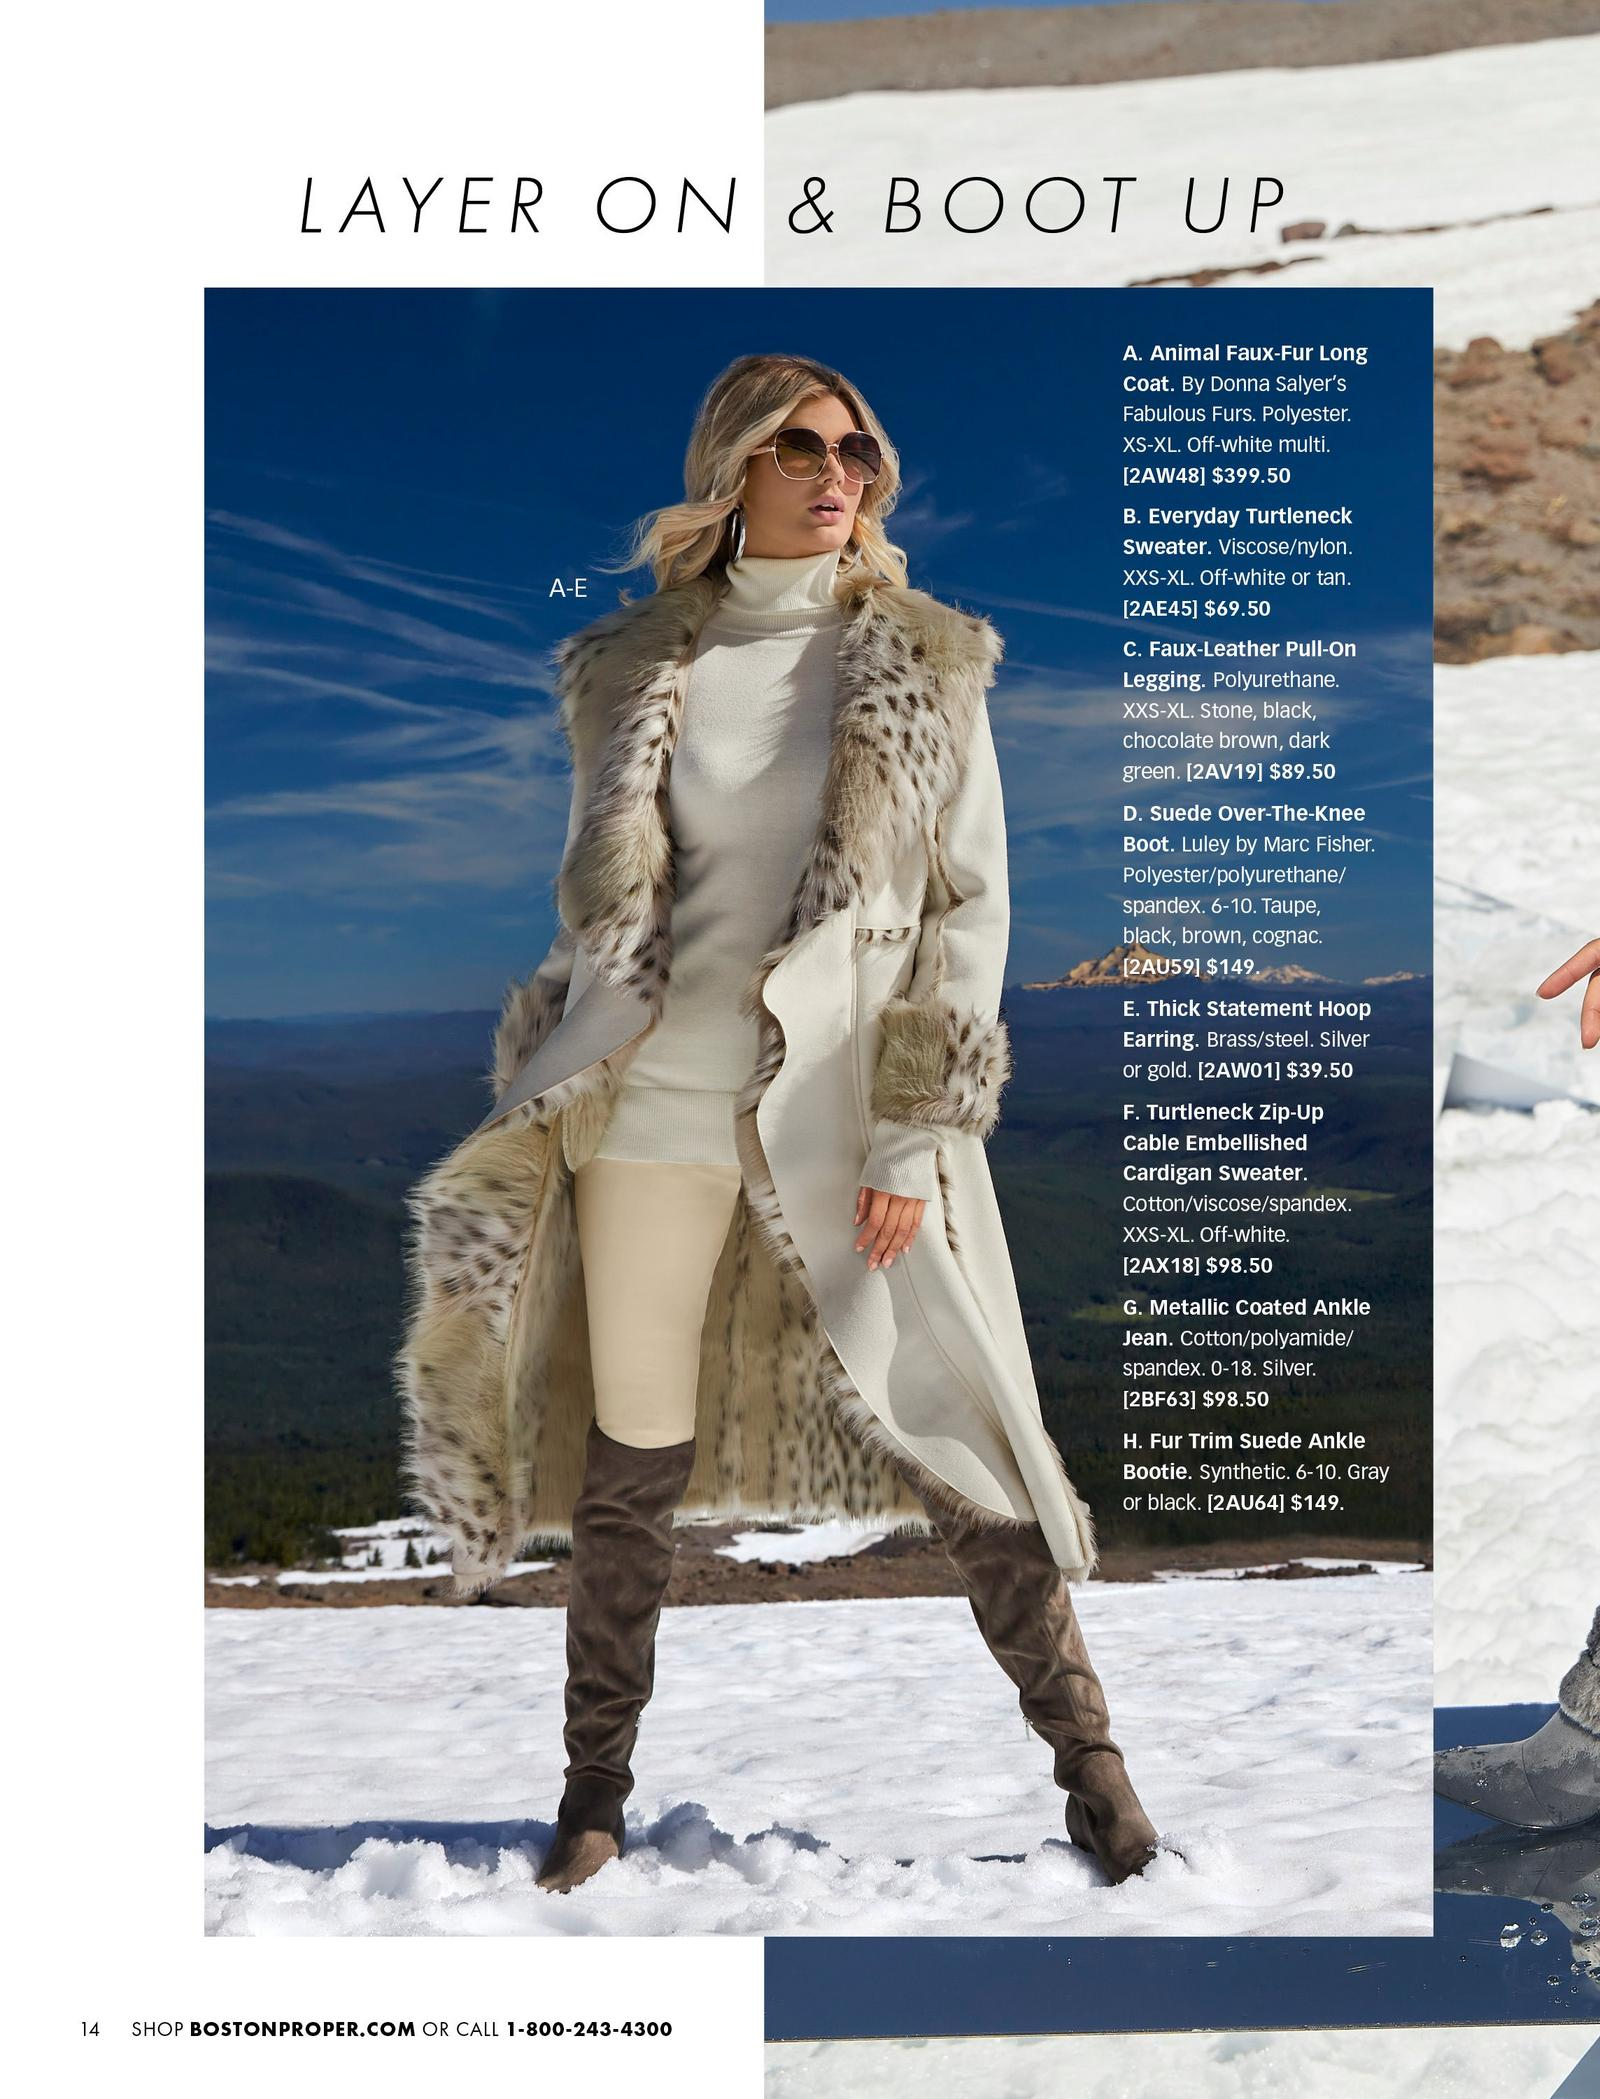 model wearing an off-white long cascading coat with animal print faux-fur, white turtleneck sweater, white faux-leather leggings, silver hoop earrings, and taupe over-the-knee suede boots.